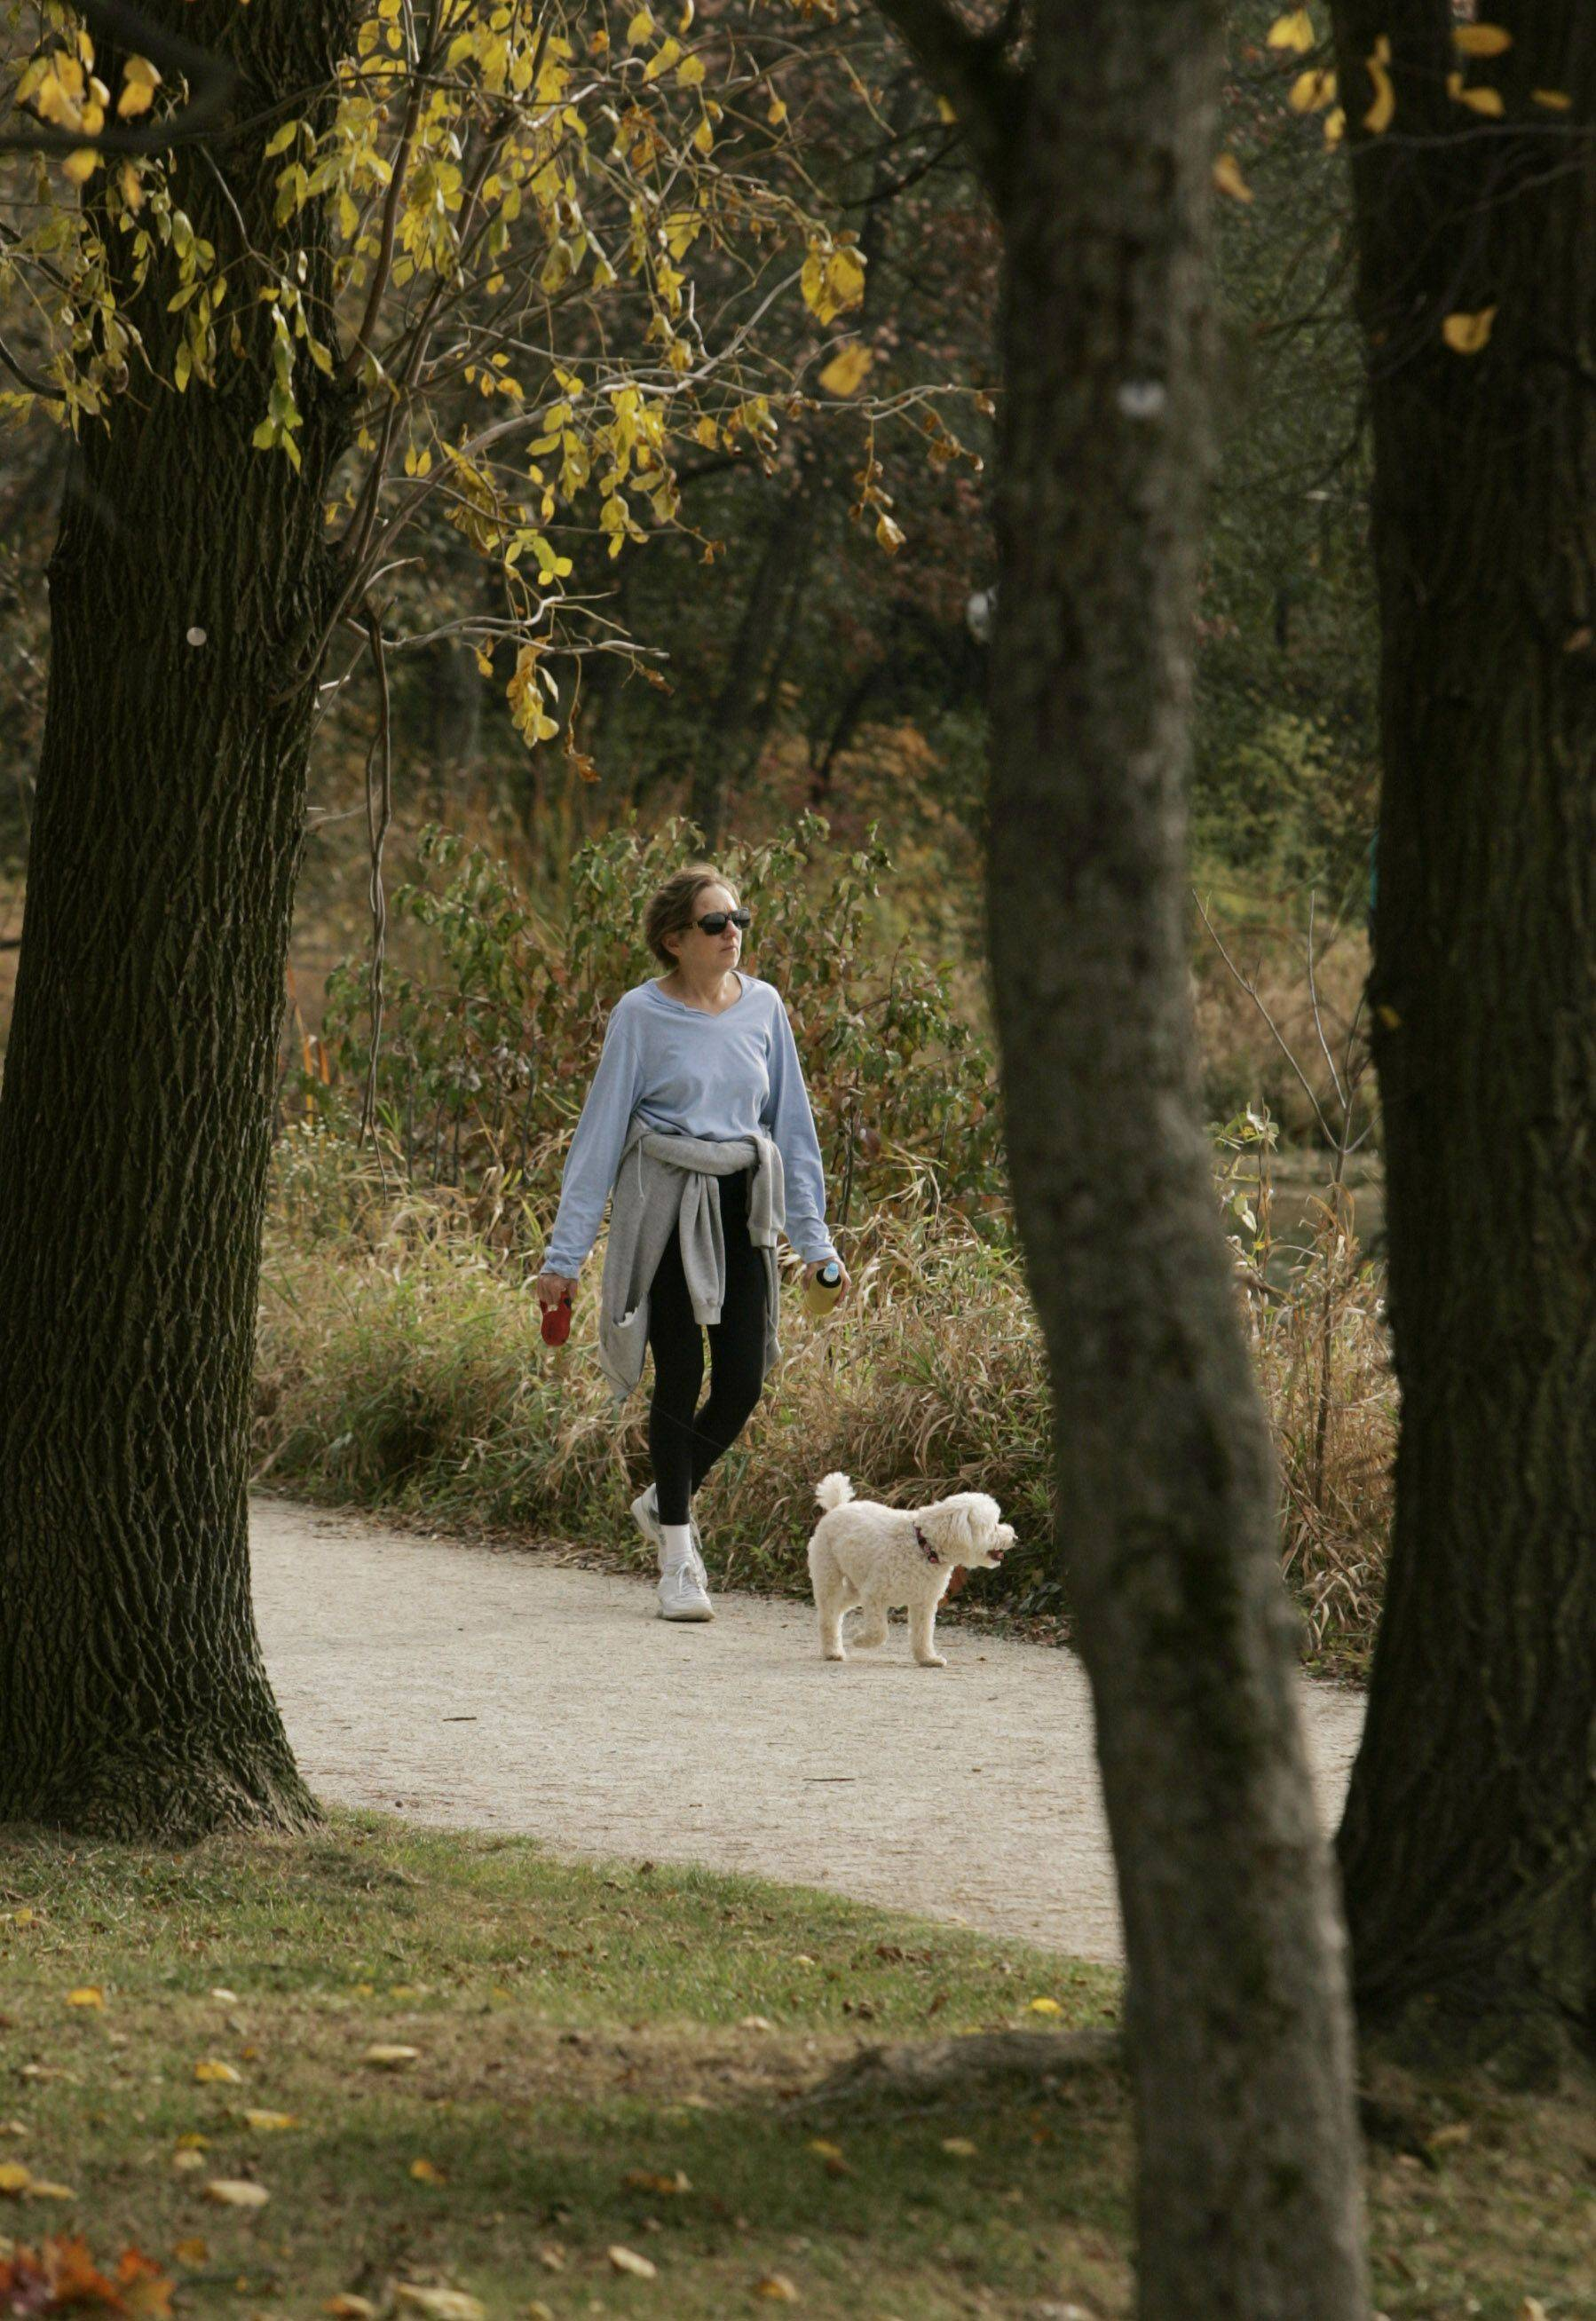 Rose Carr of Wheaton and her dog, Sierra, enjoy a nice day Monday at Herrick Lake Forest Preserve in Wheaton.